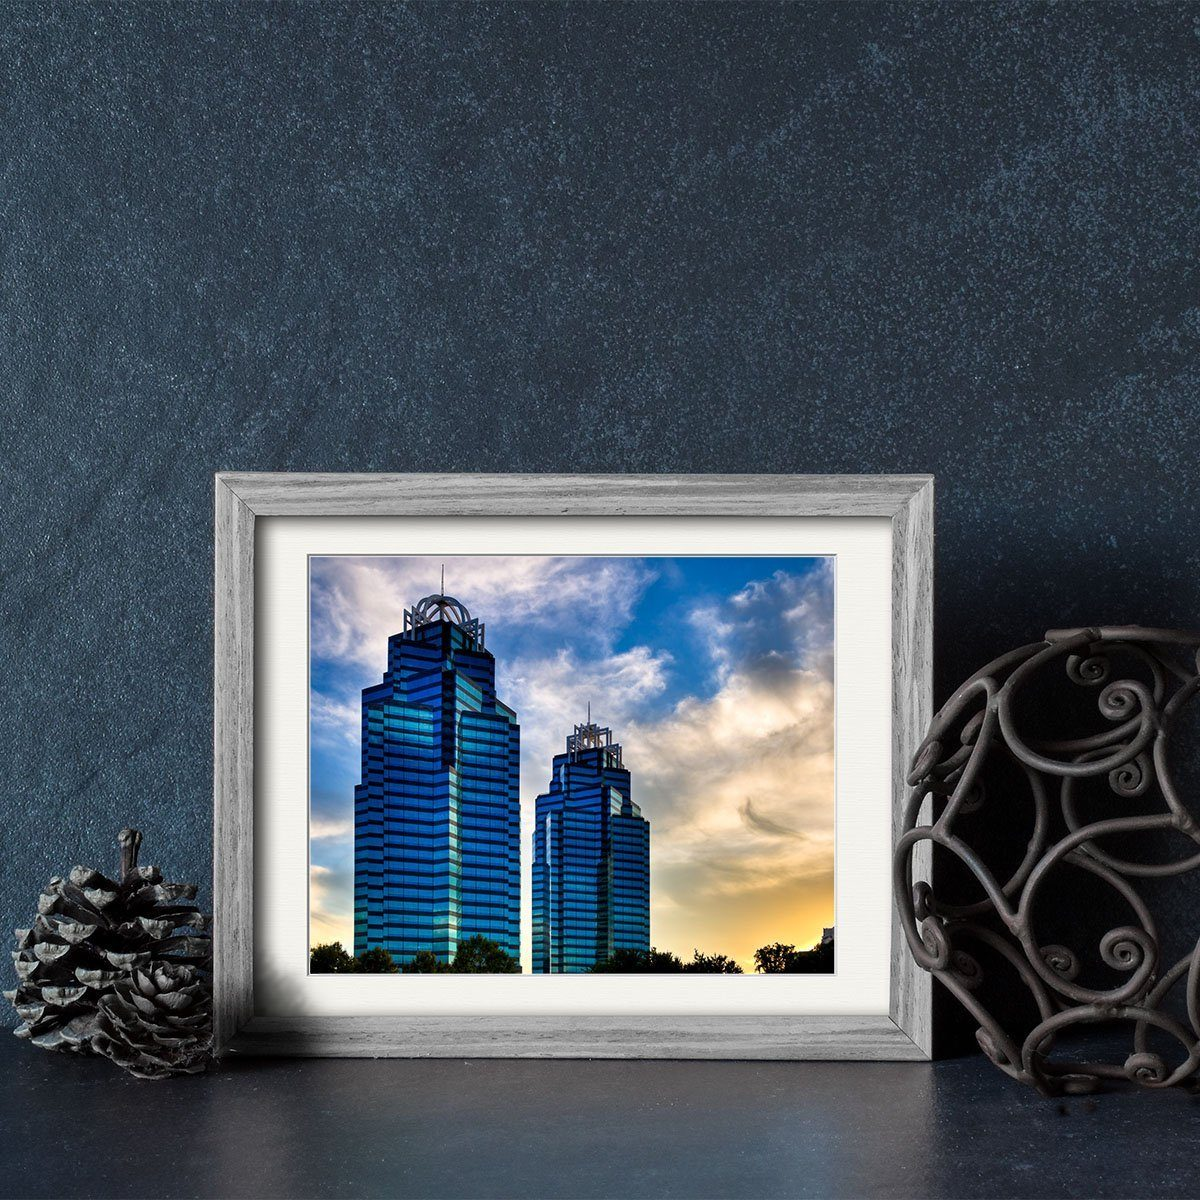 King And Queen Towers Framed Print - Atlanta Skyscrapers